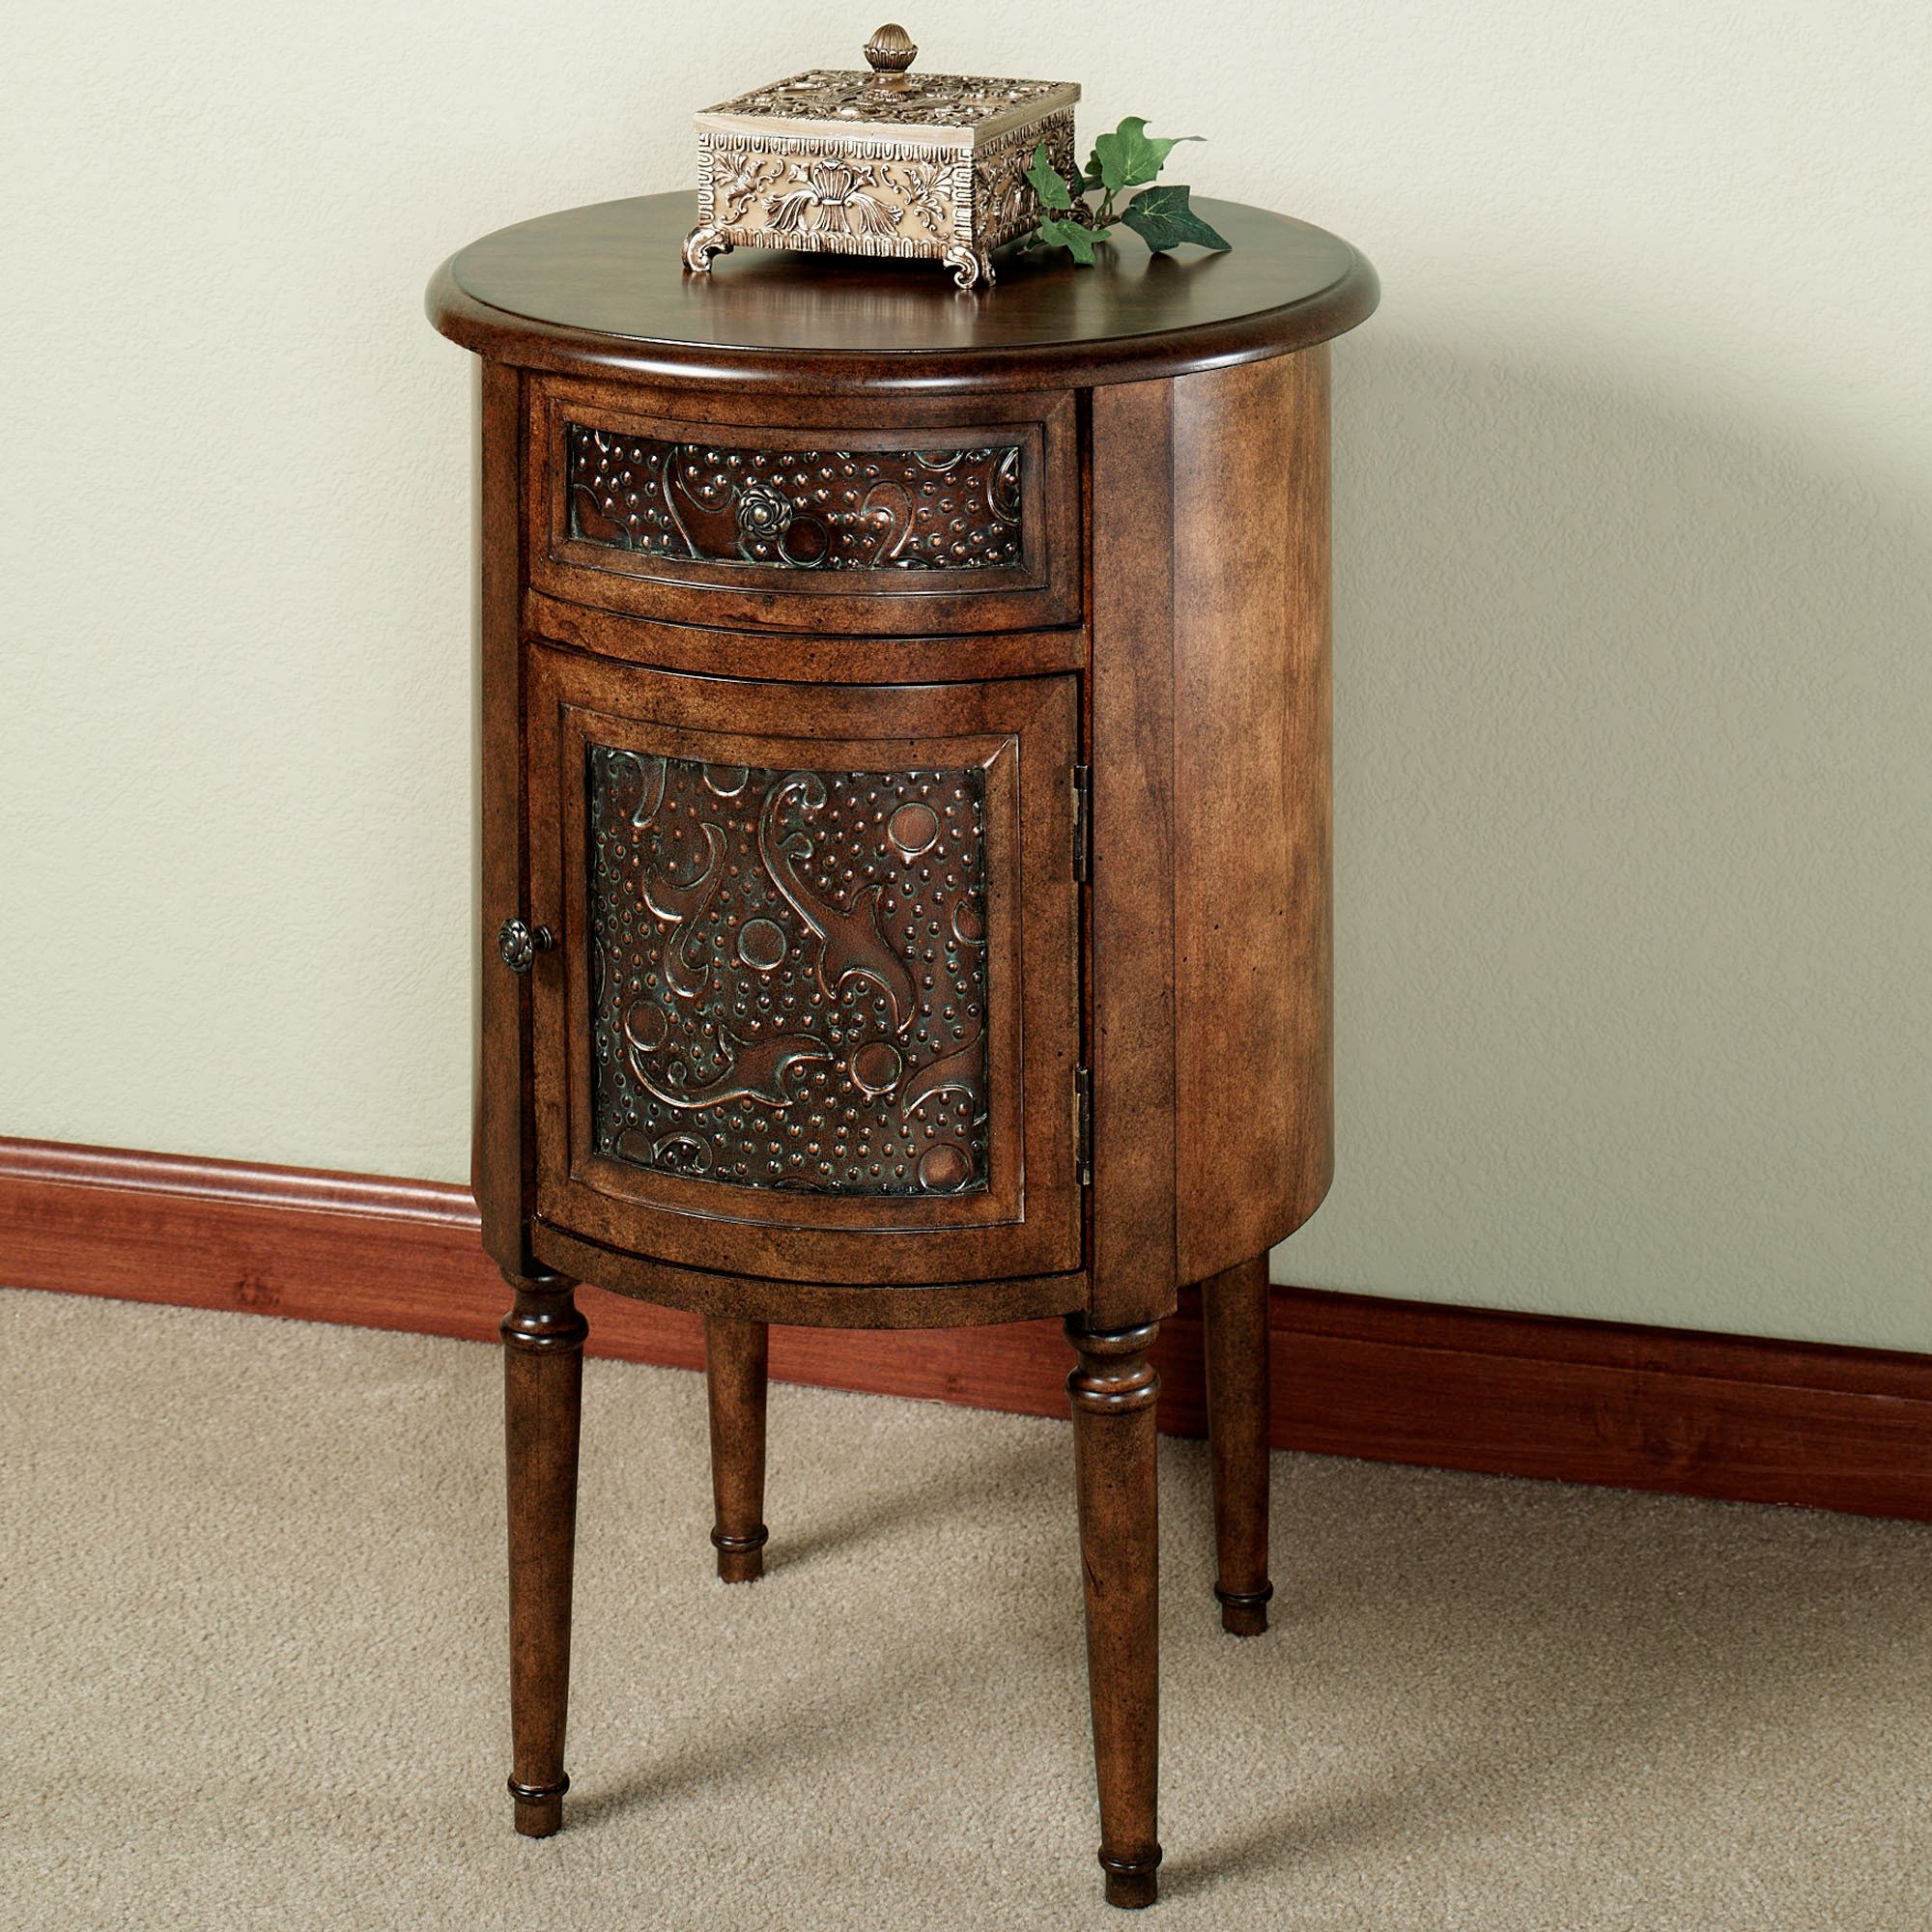 lombardy round storage accent table end with door touch zoom mission oak coffee outdoor occasional tables black marble side woodworking vise fold dining gold drum dog crate couch